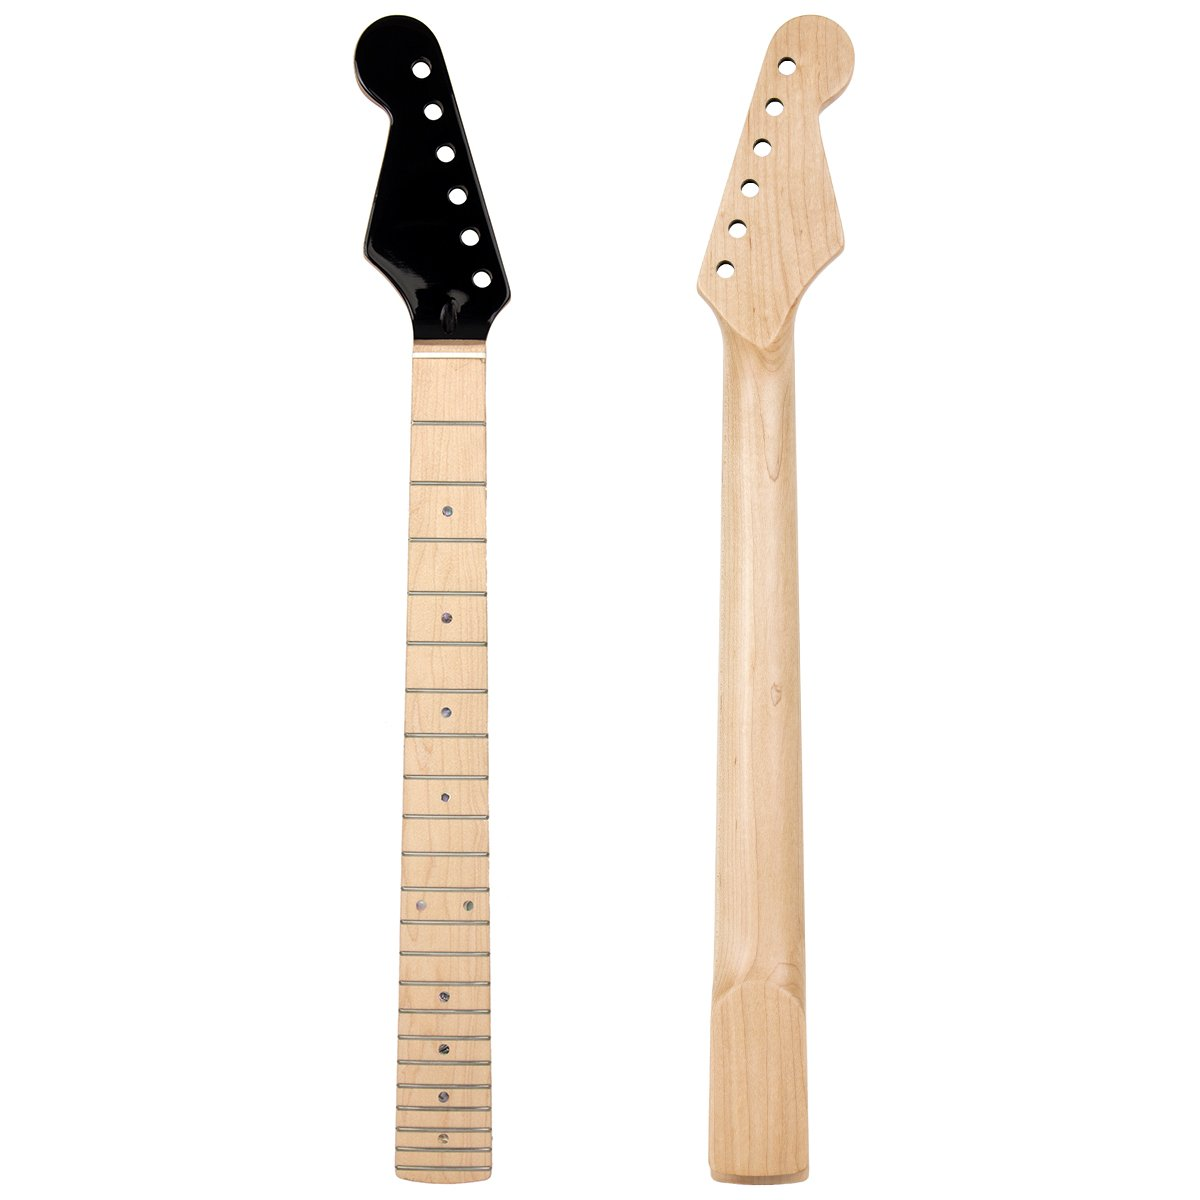 Lefty Handed 22 Fret Electric Guitar Neck for ST Guitar Parts Replacement Maple